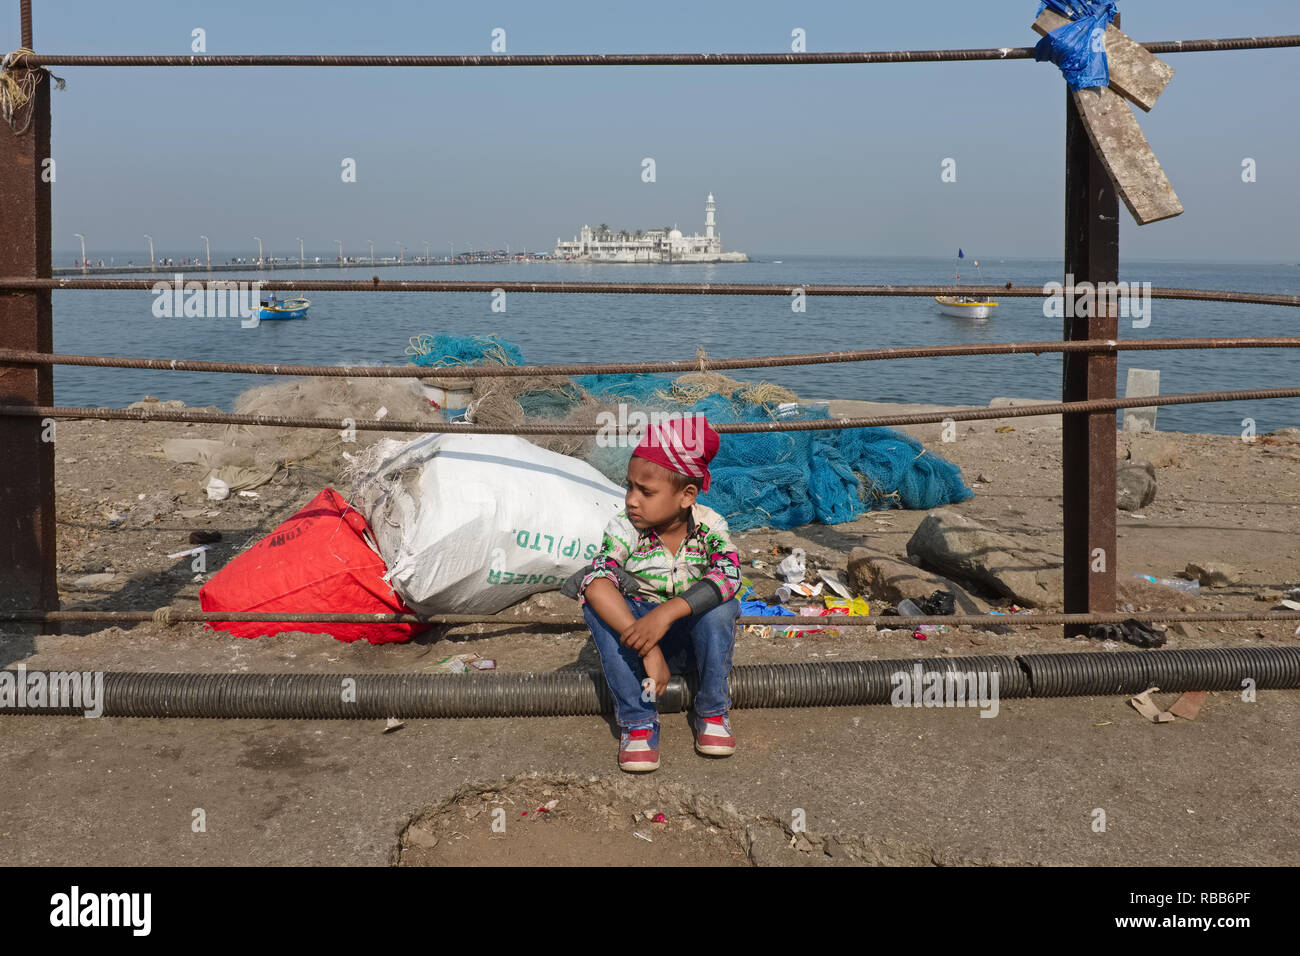 A young Muslim boy sits by Worli Bay in Mumbai, India, in the background Haji Ali Dargah and Mosque, the city's most revered Muslim place of worship - Stock Image